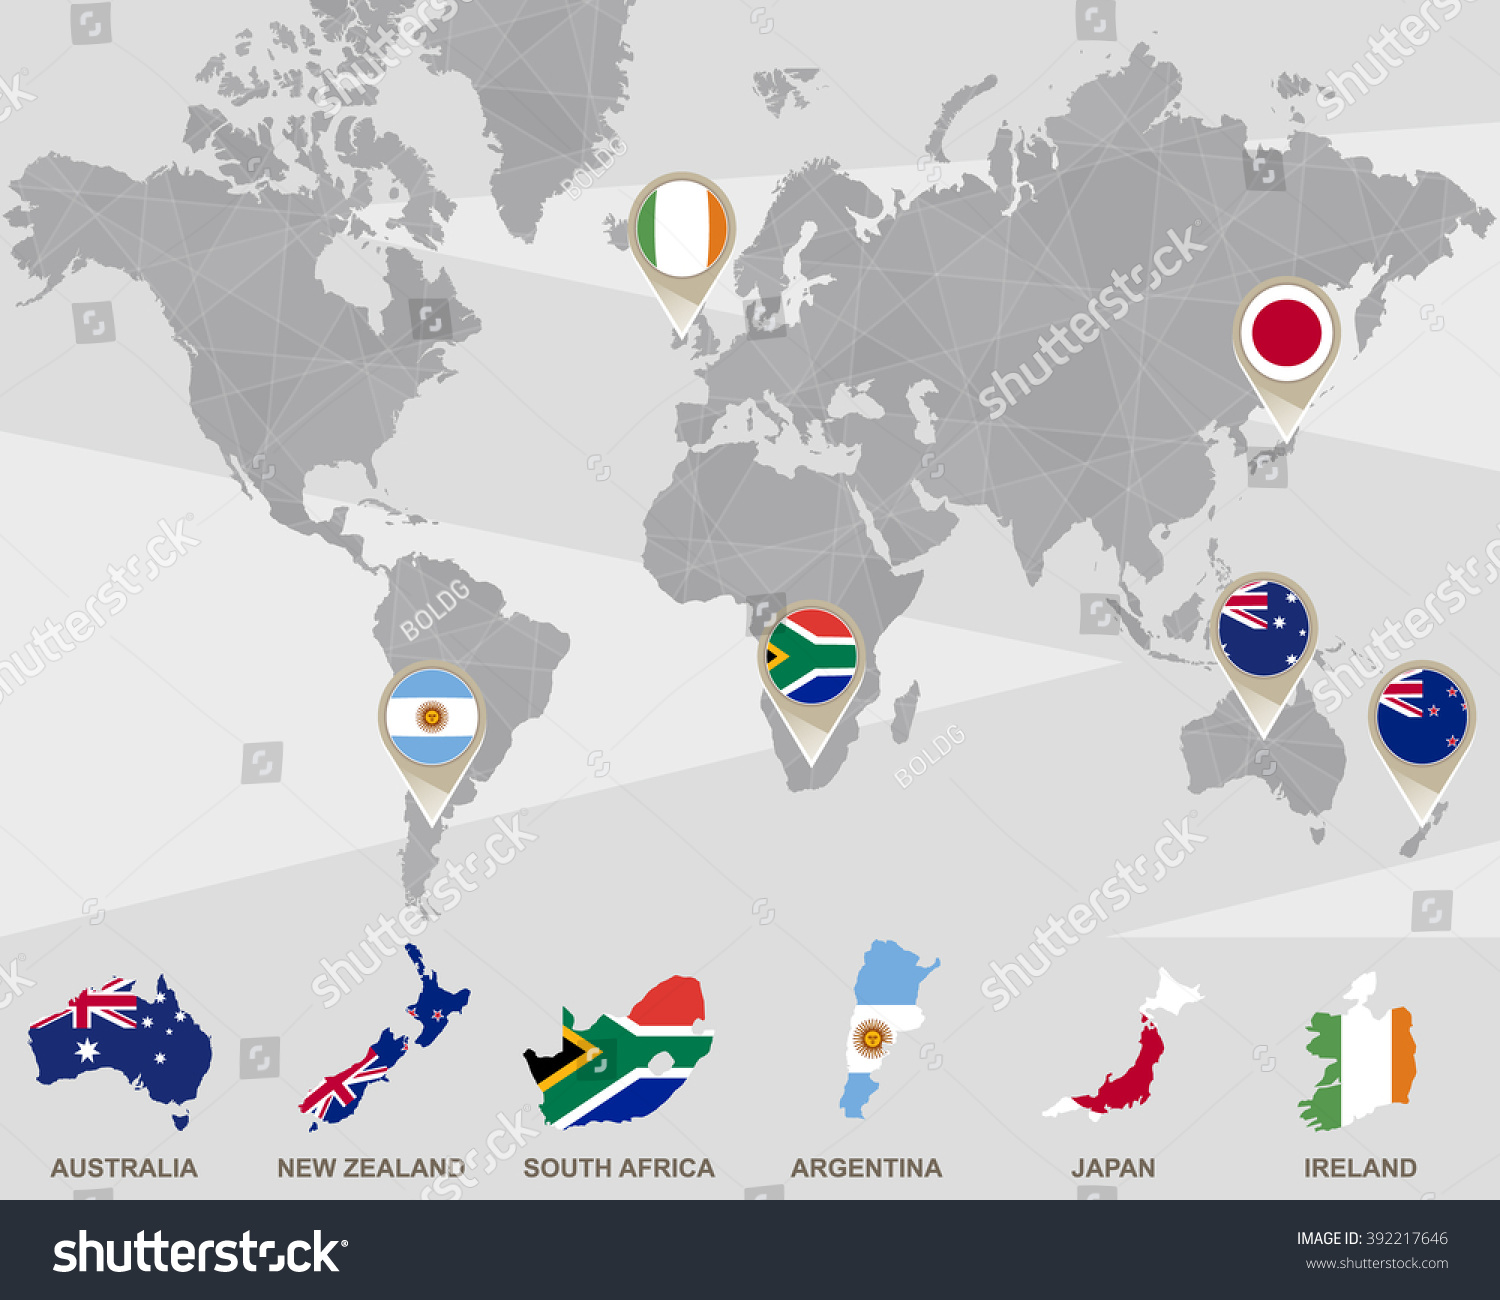 World map australia new zealand south stock illustration 392217646 world map with australia new zealand south africa argentina japan ireland gumiabroncs Image collections